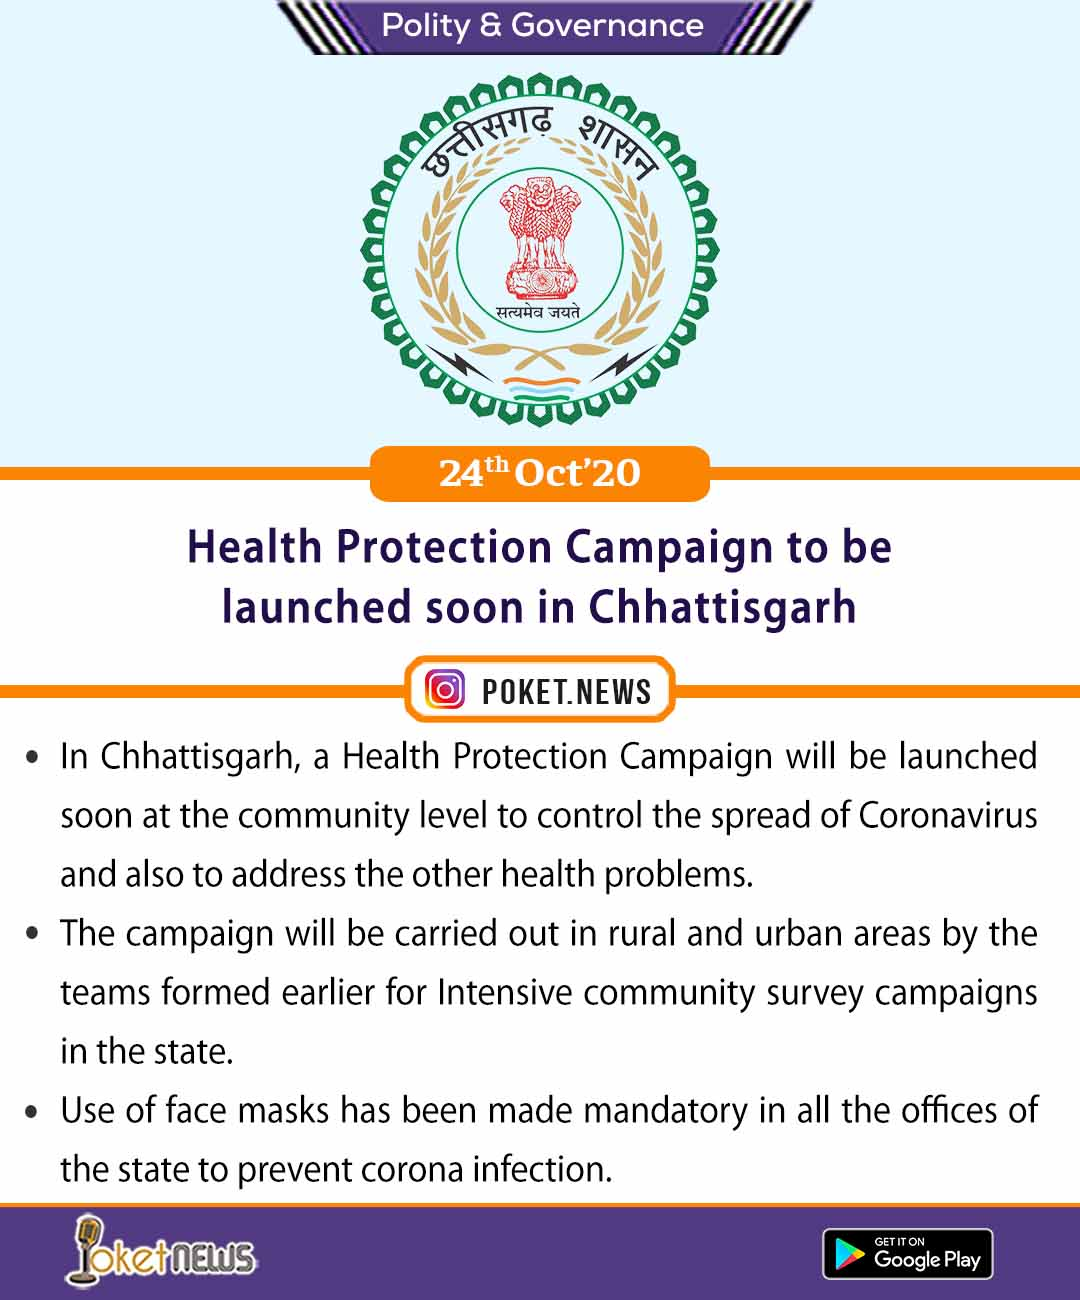 Health Protection Campaign to be launched soon in Chhattisgarh